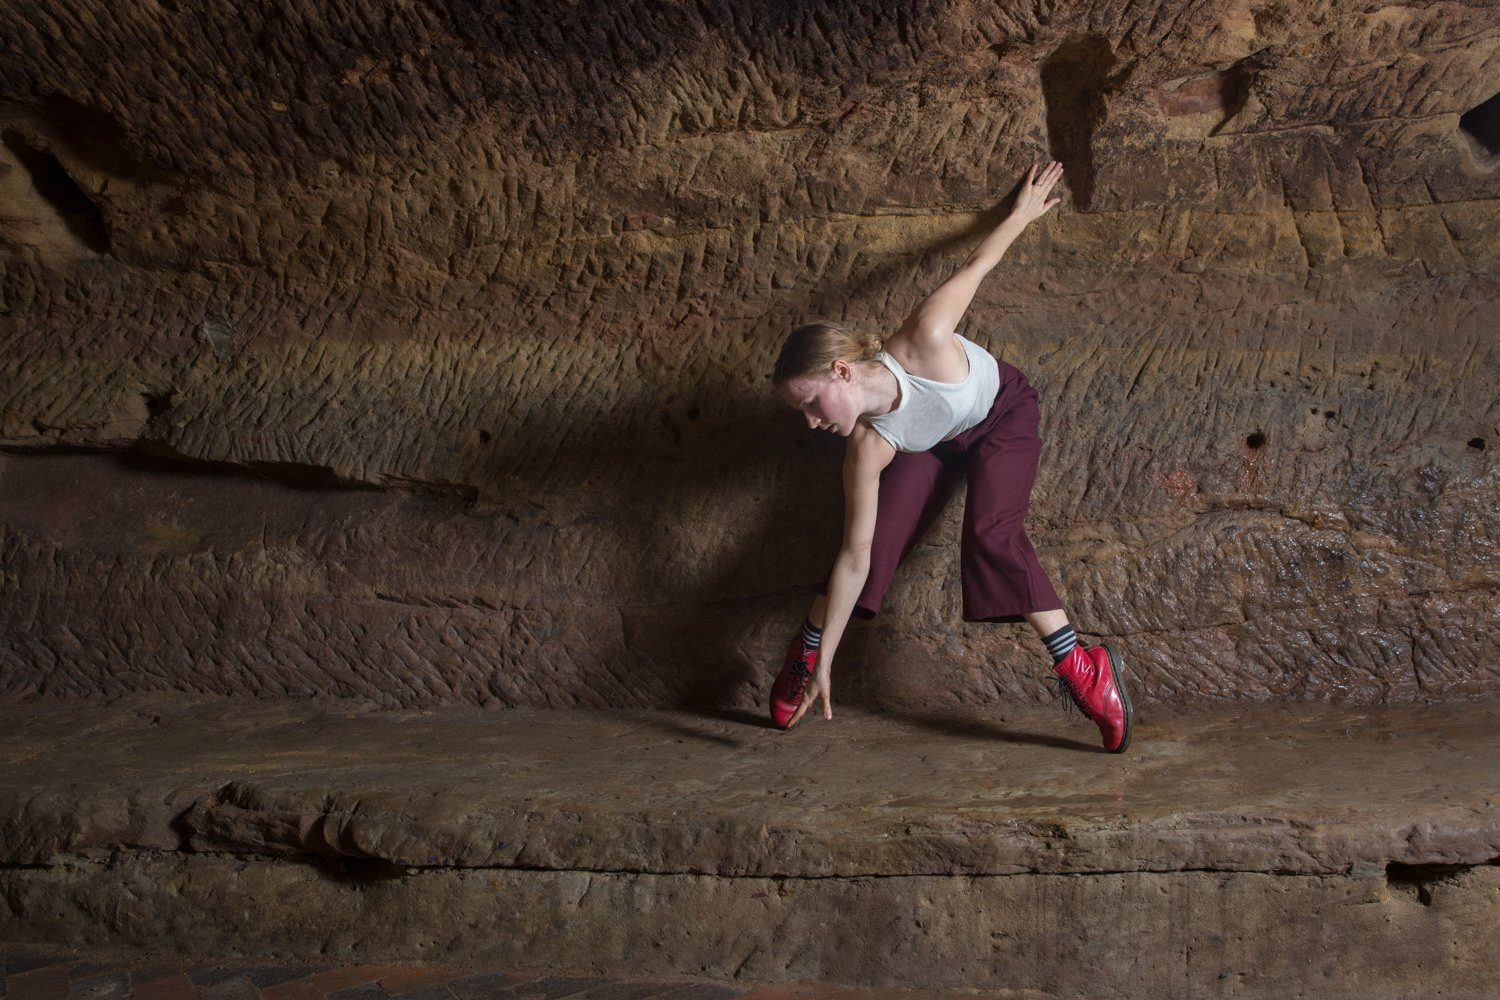 Amy Harris dancing in the caves of the Maltcross in Nottingham